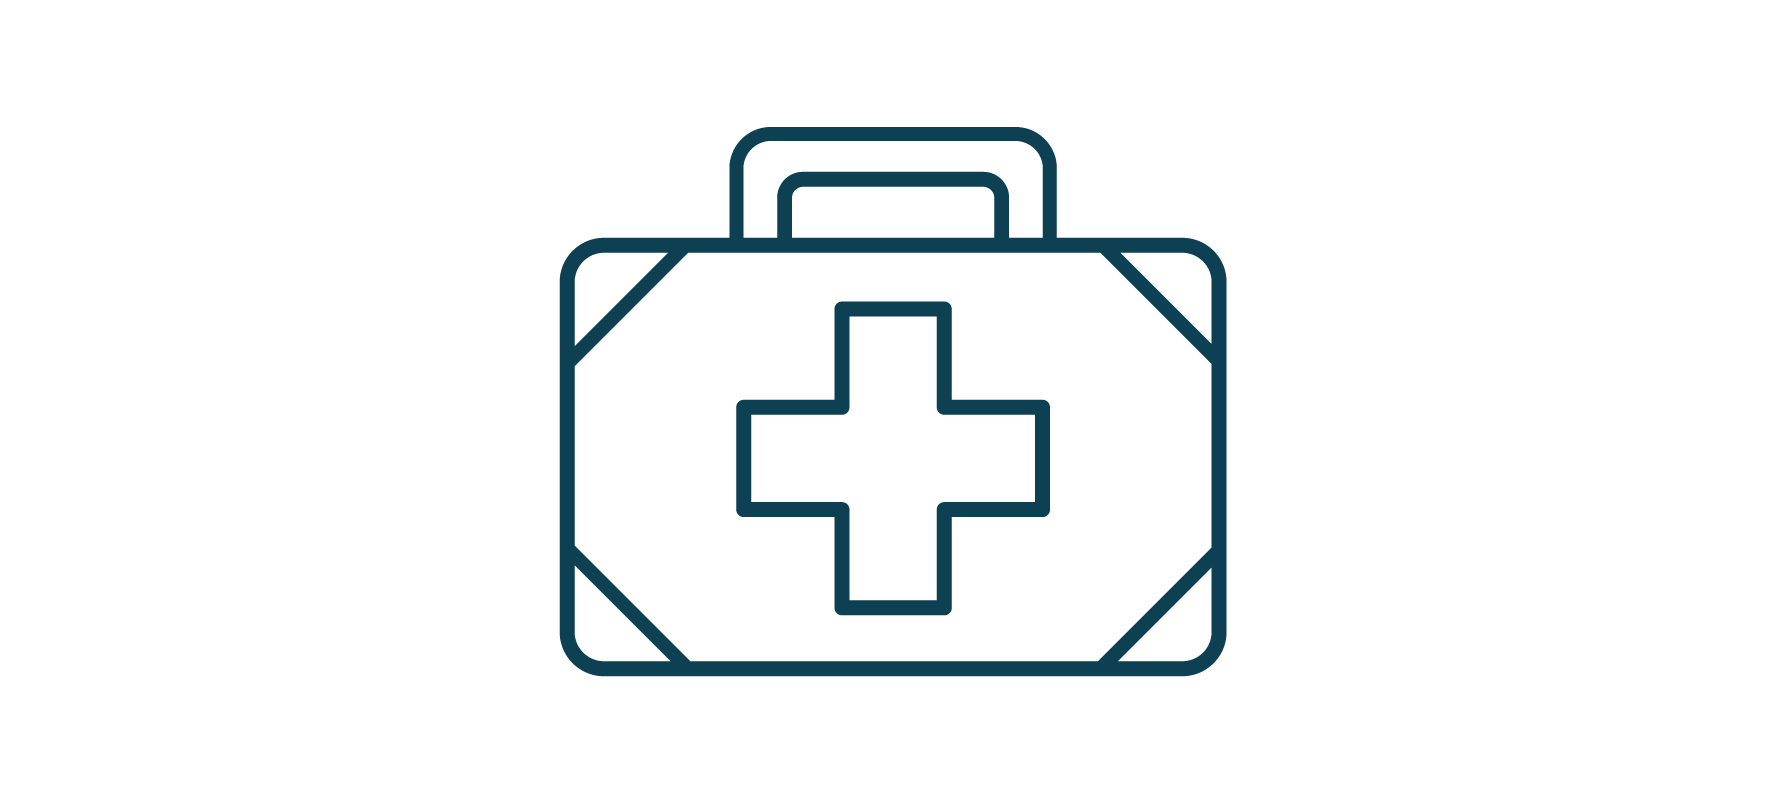 Briefcase-with-medical-cross-representing-Medical-Negligence-Icon.png